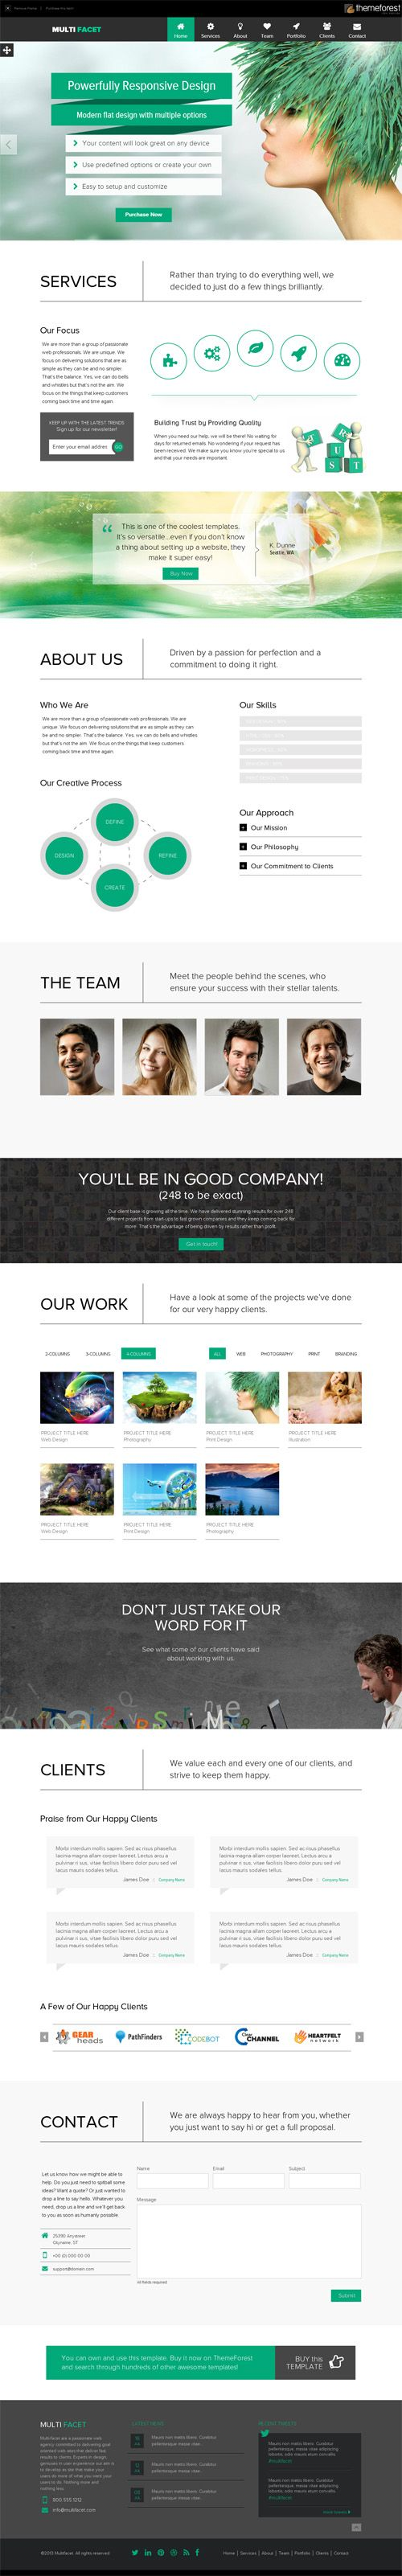 MultiFacet - Responsive One Page Template #flatdesign ...